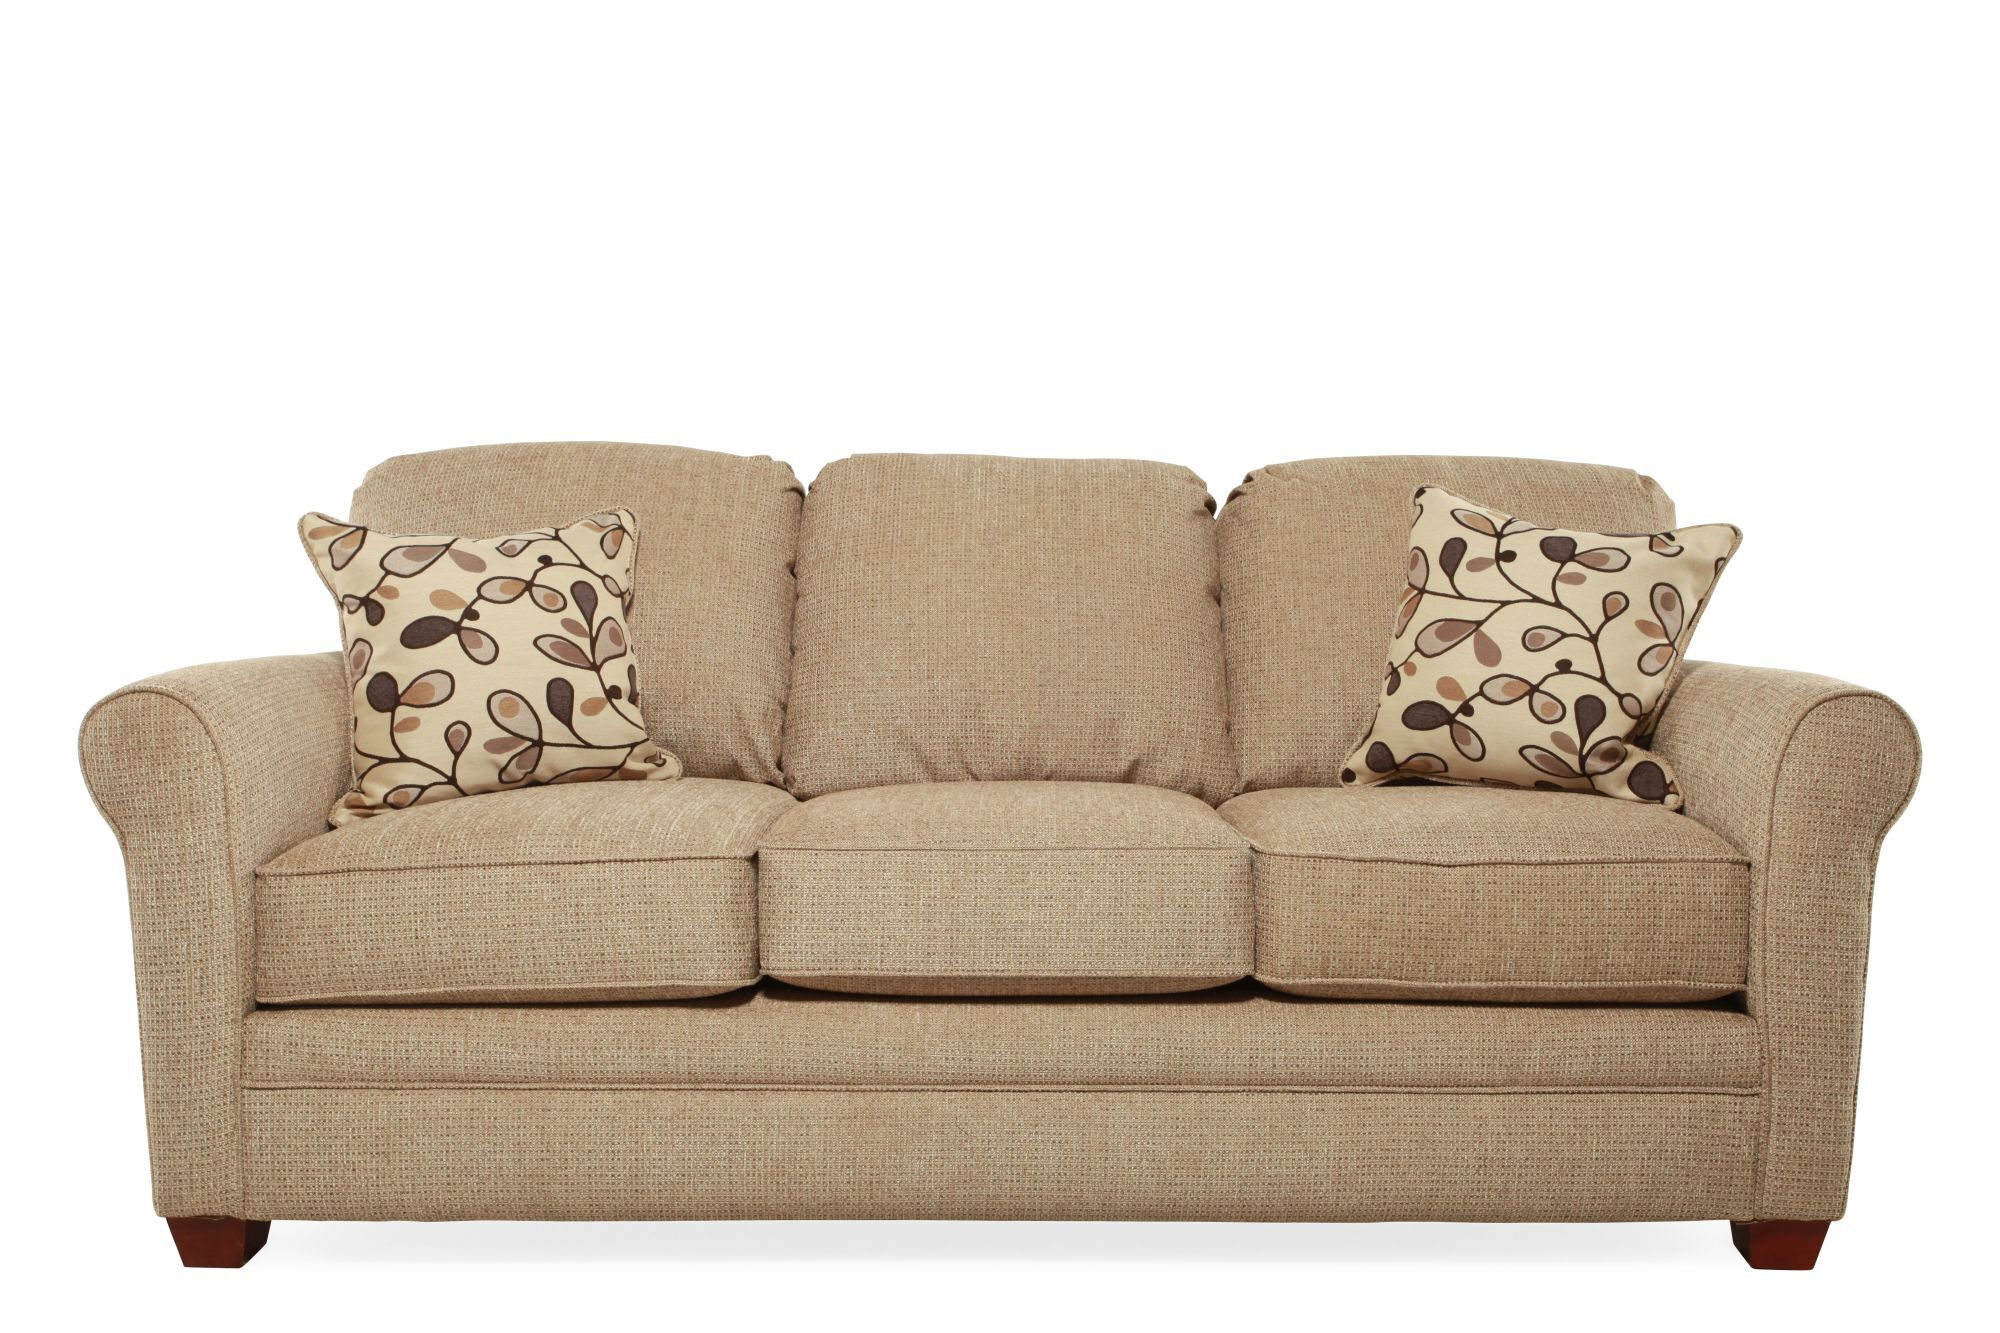 Images I Rest Traditional 84u0026quot; Sleeper Sofa In Brown I Rest Traditional  84u0026quot; Sleeper Sofa In Brown